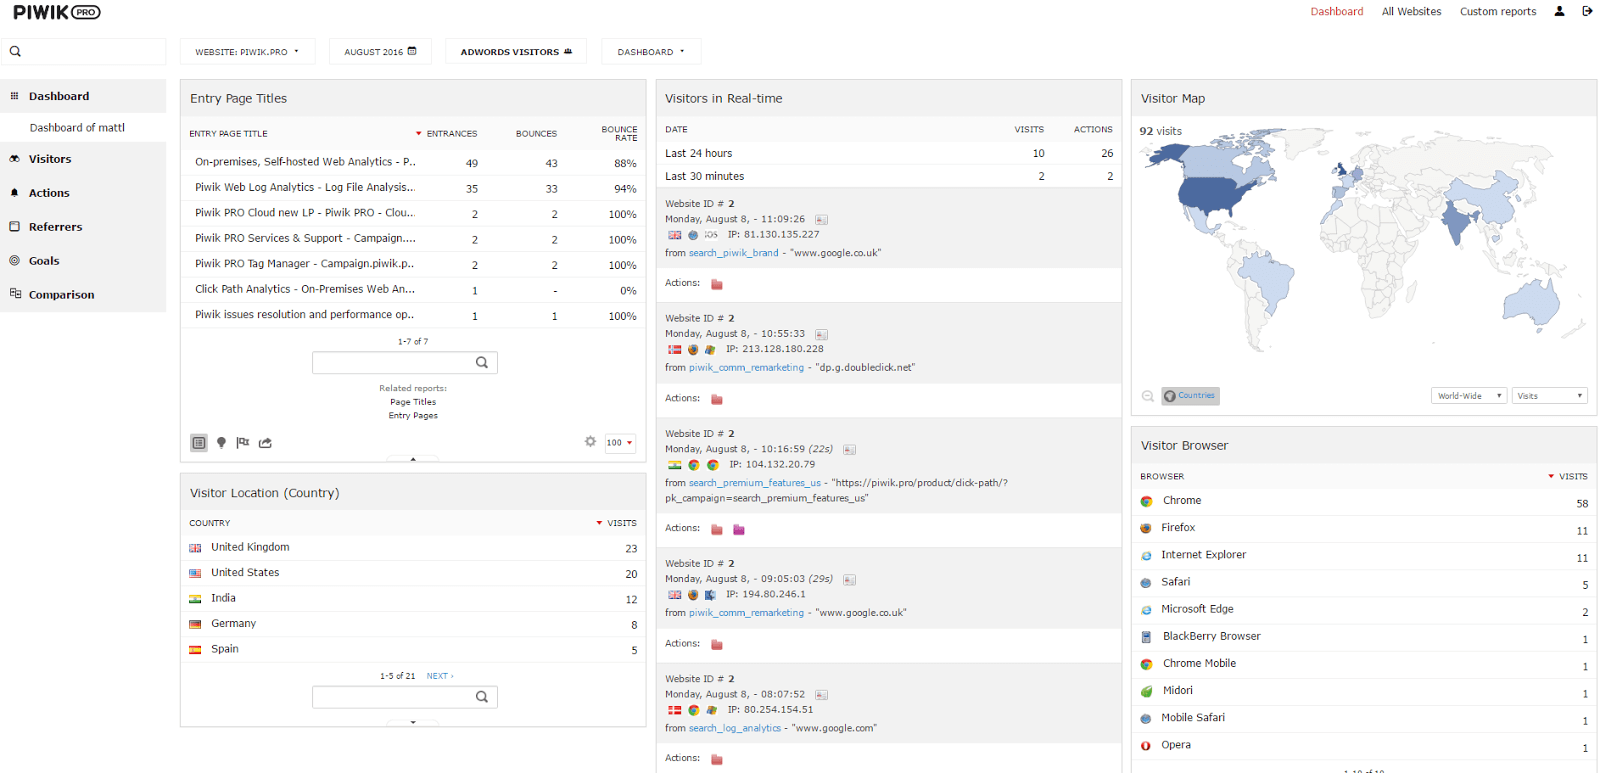 Piwik PRO Adwords Analytics in your dashboard